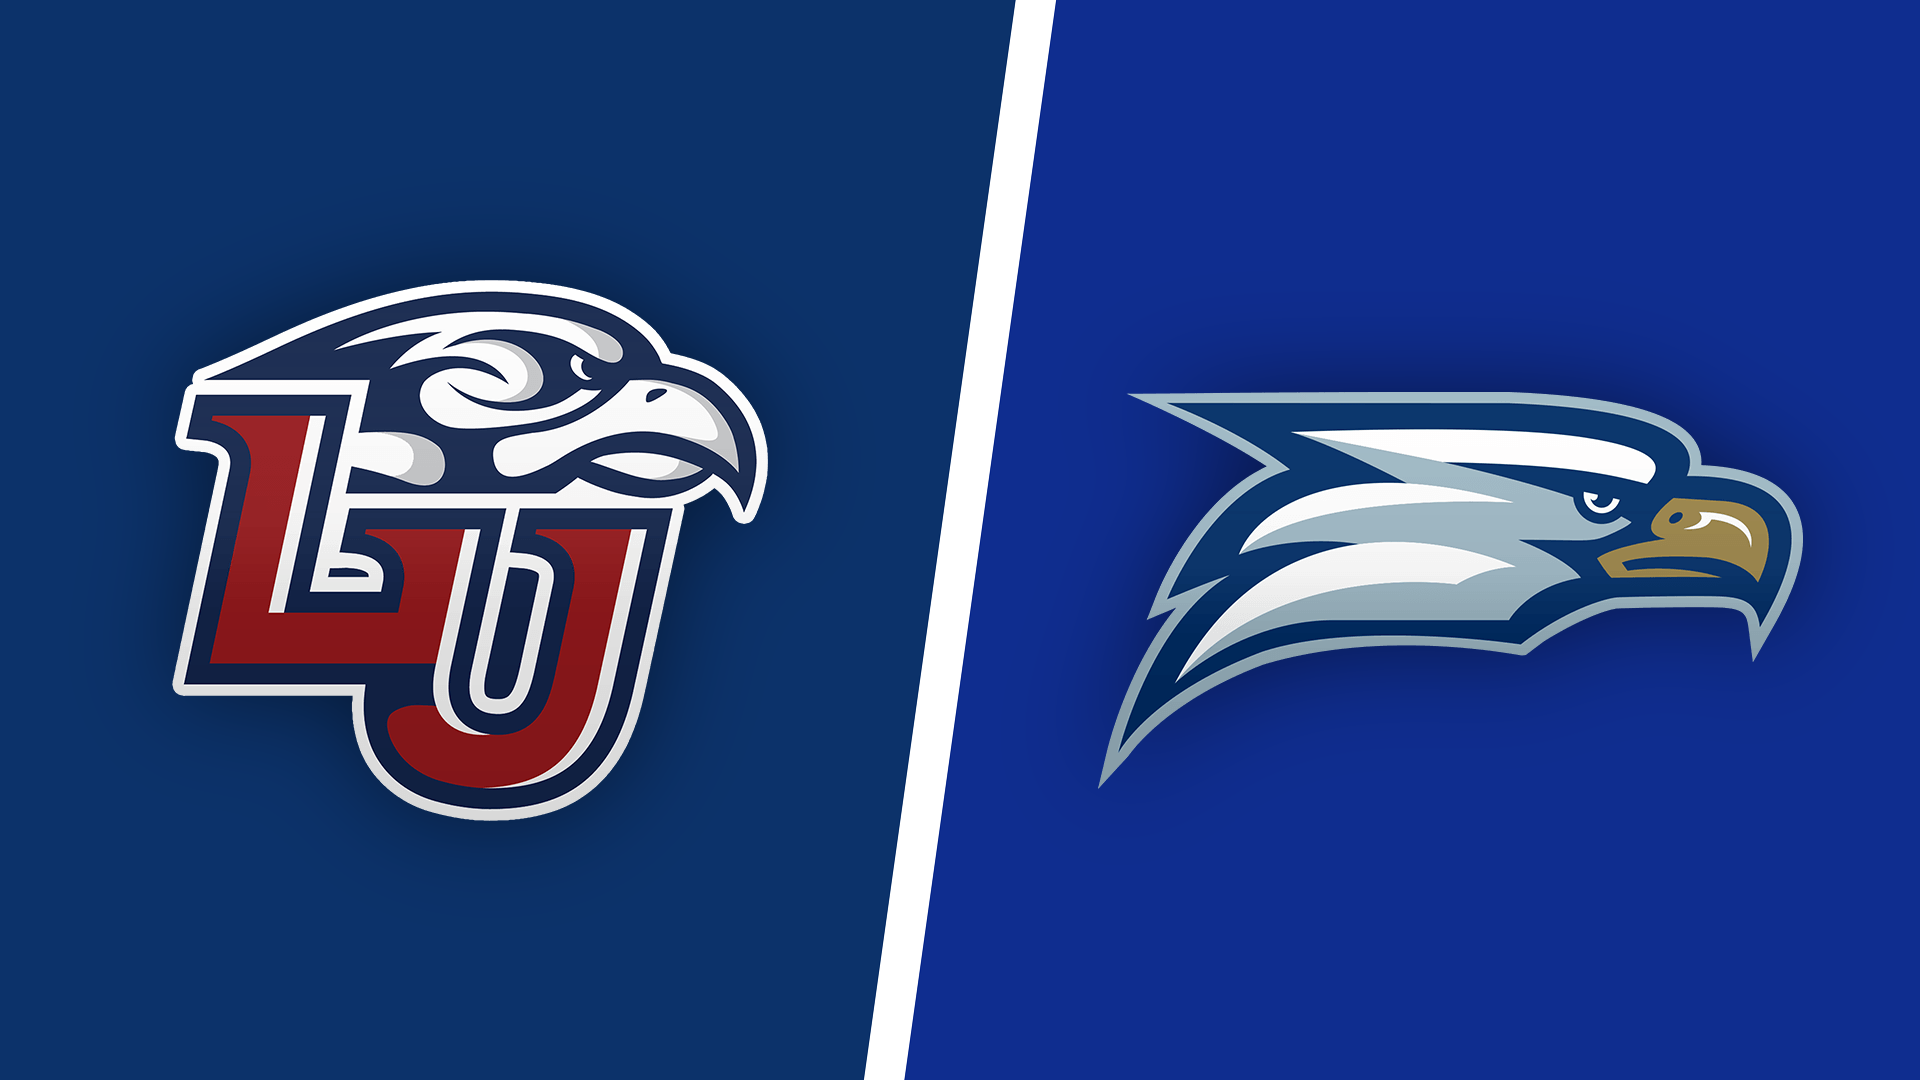 How to Watch Cure Bowl: Liberty at Georgia Southern on CBS.